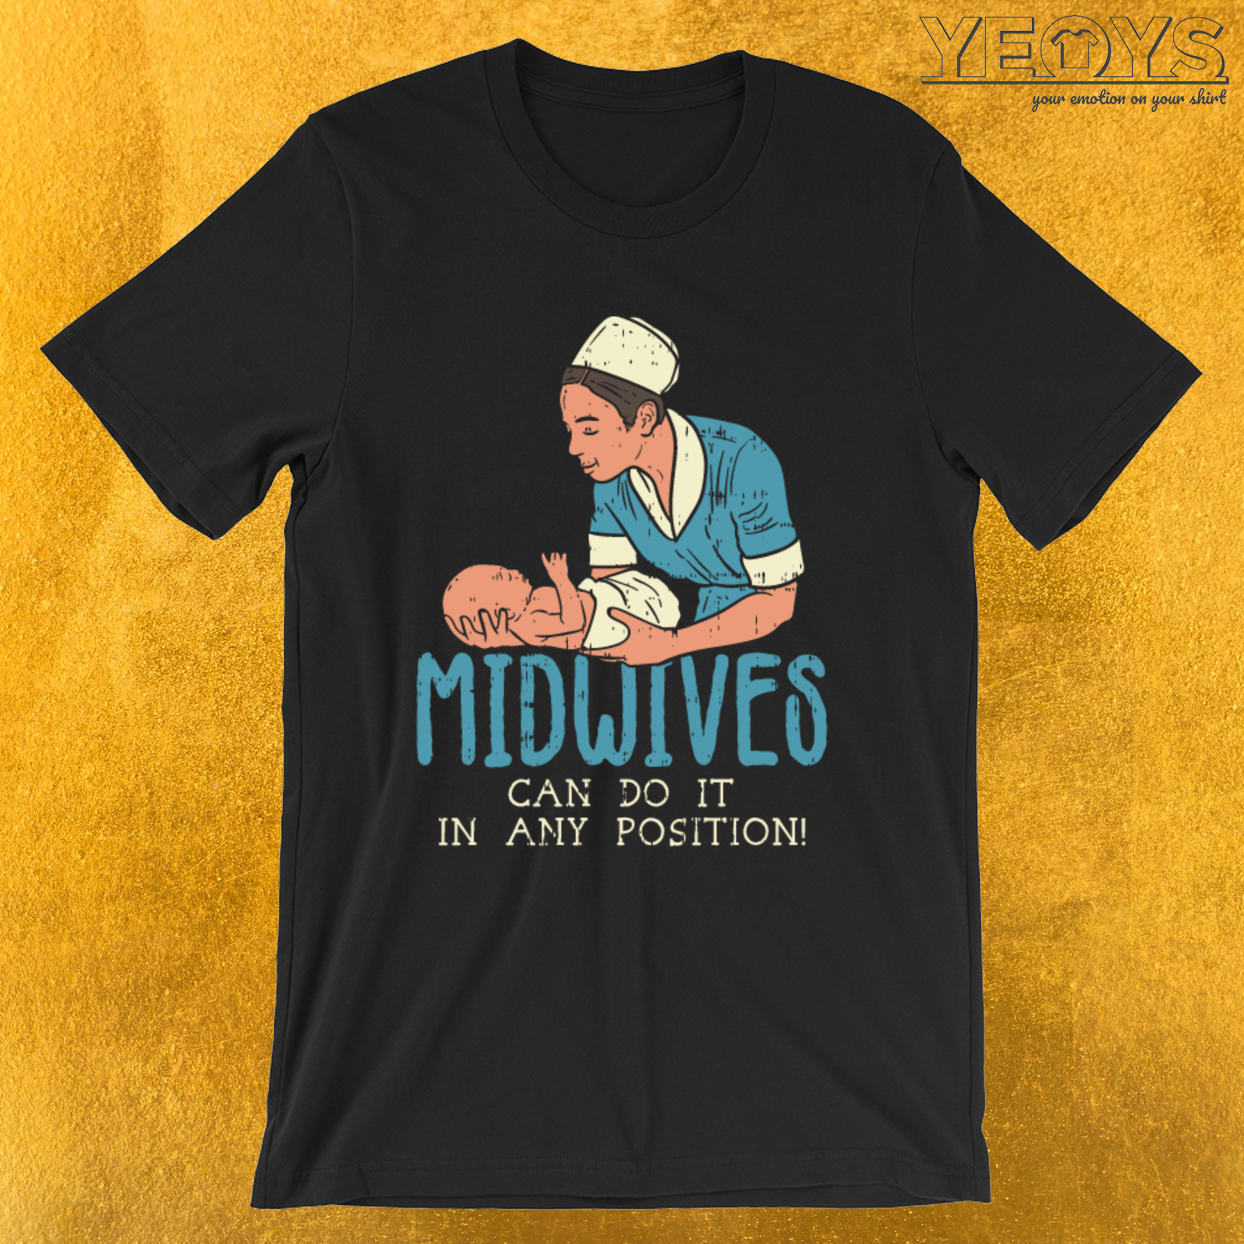 Midwives Can Do It In Any Position – Labor And Delivery Nurse Tee